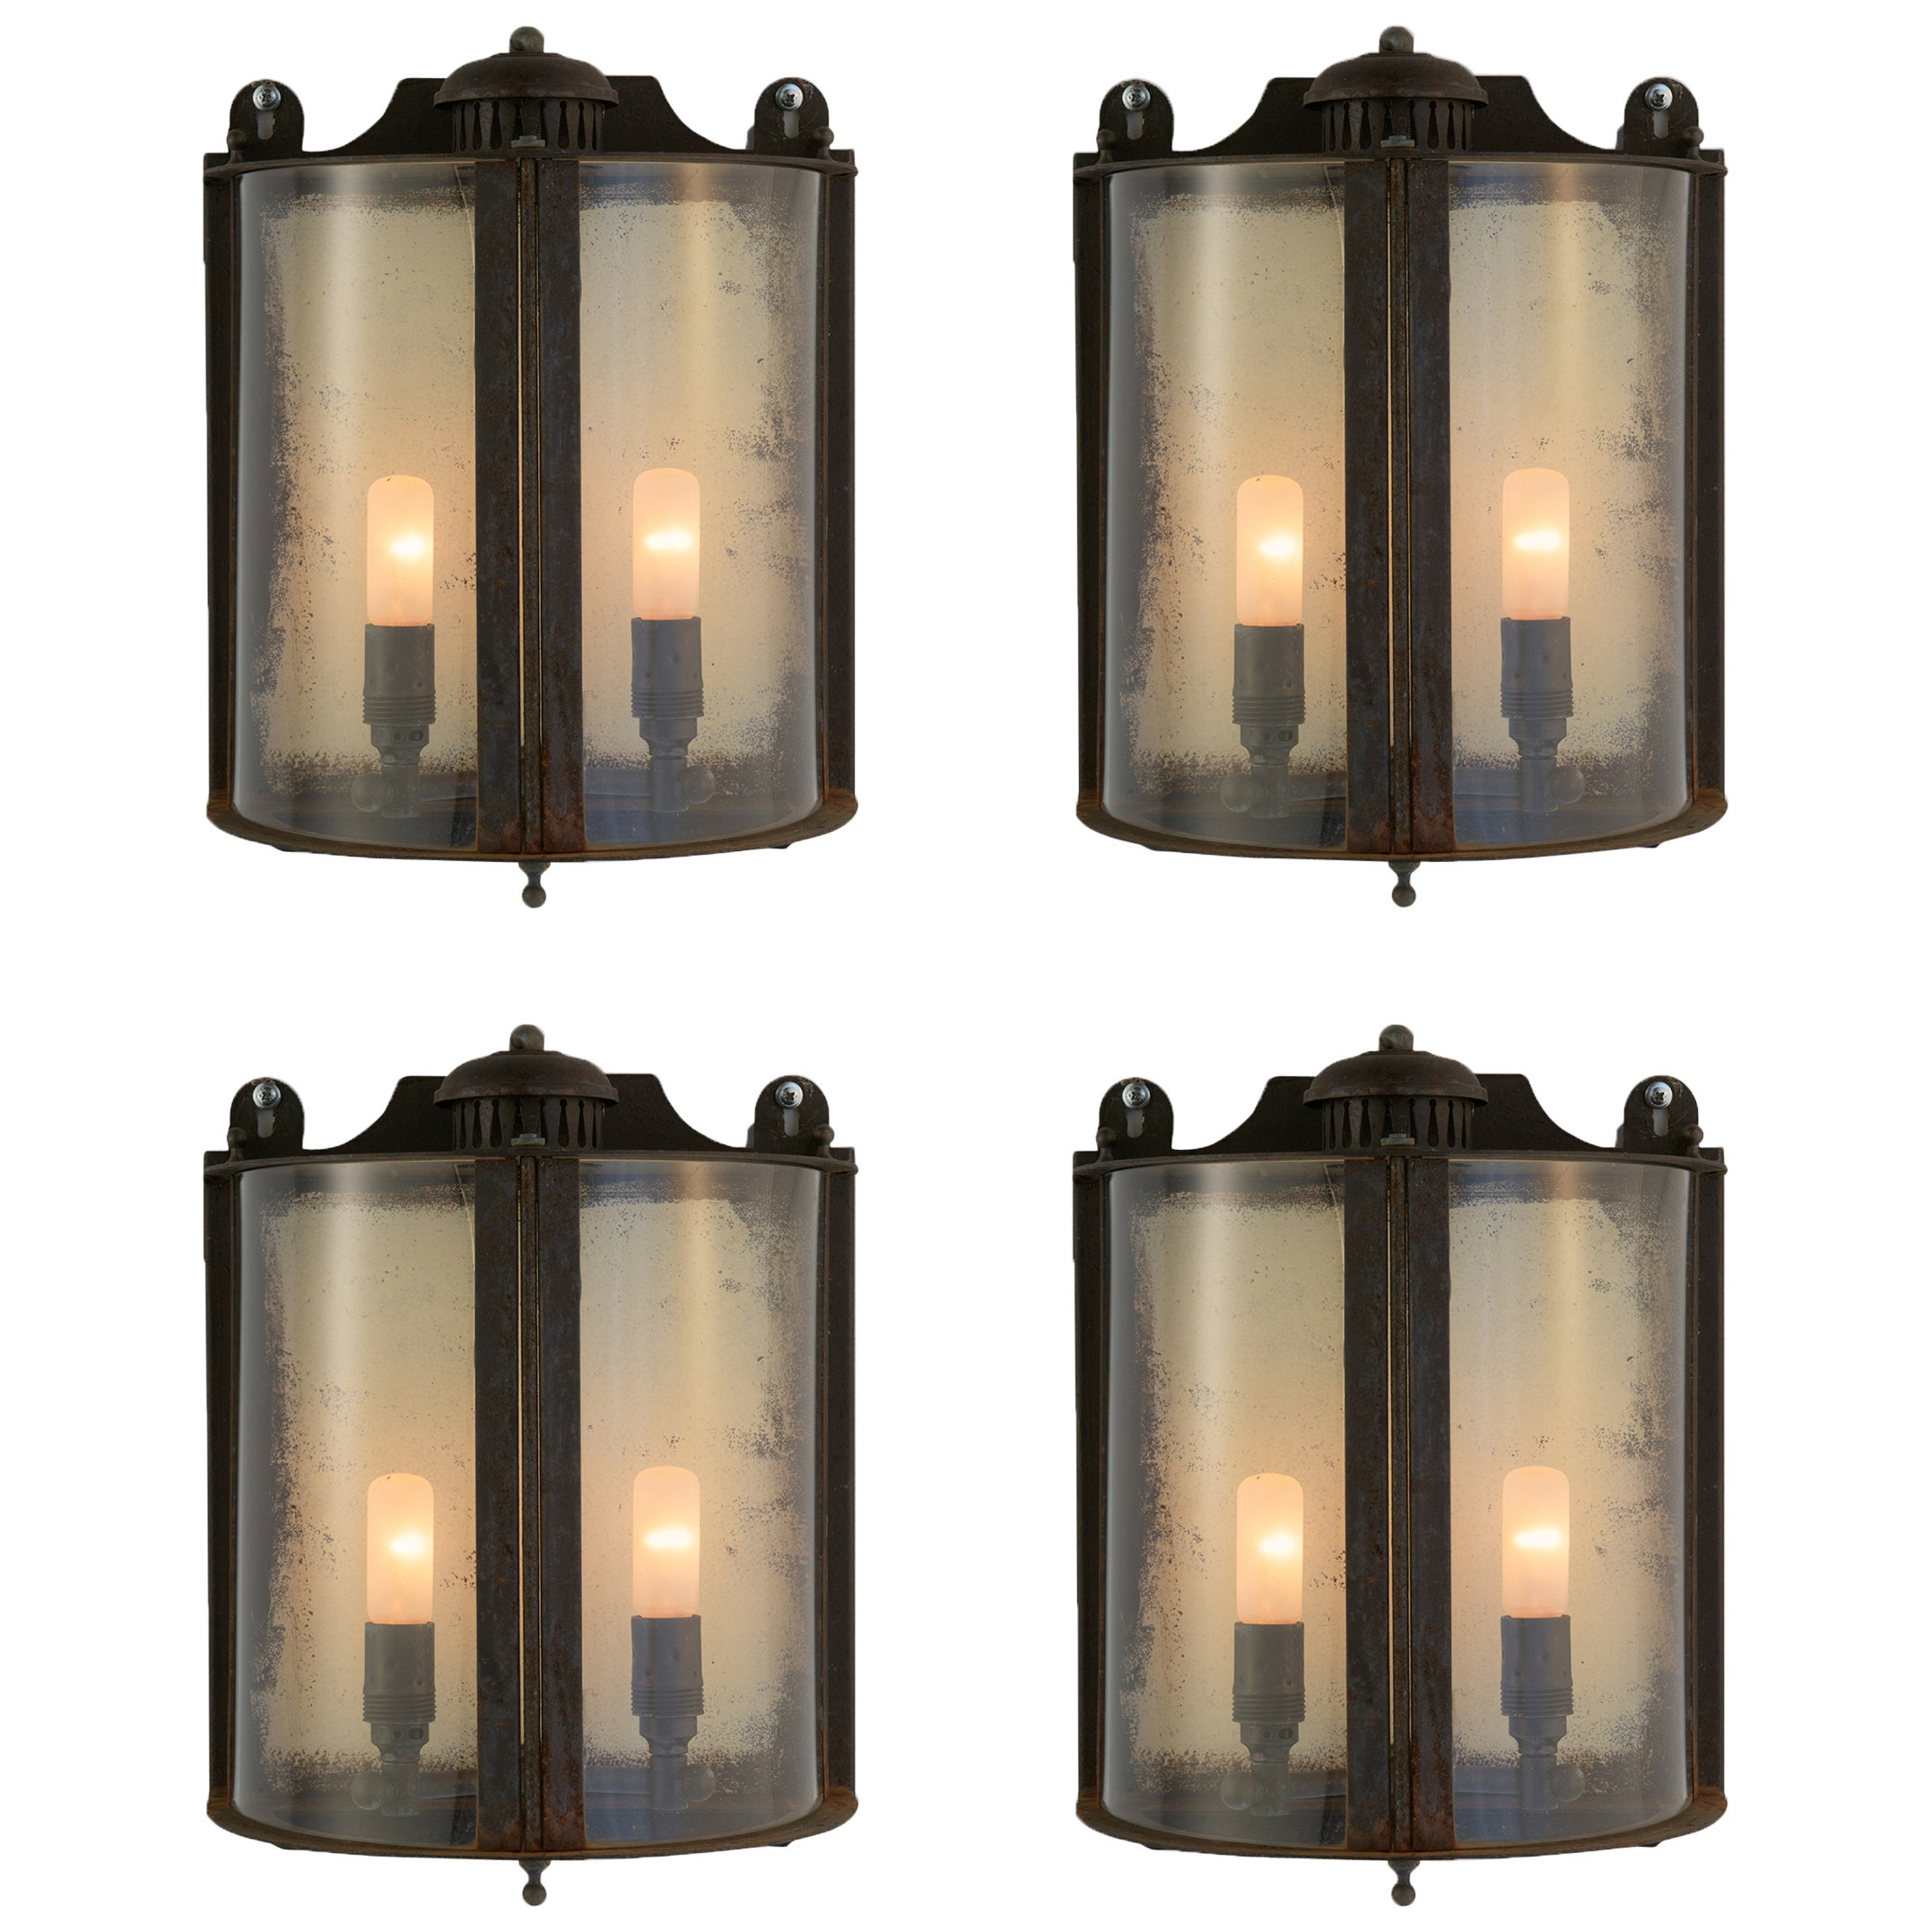 Galvanized Metal and Glass Outdoor Wall Sconce, Italy, 21st century